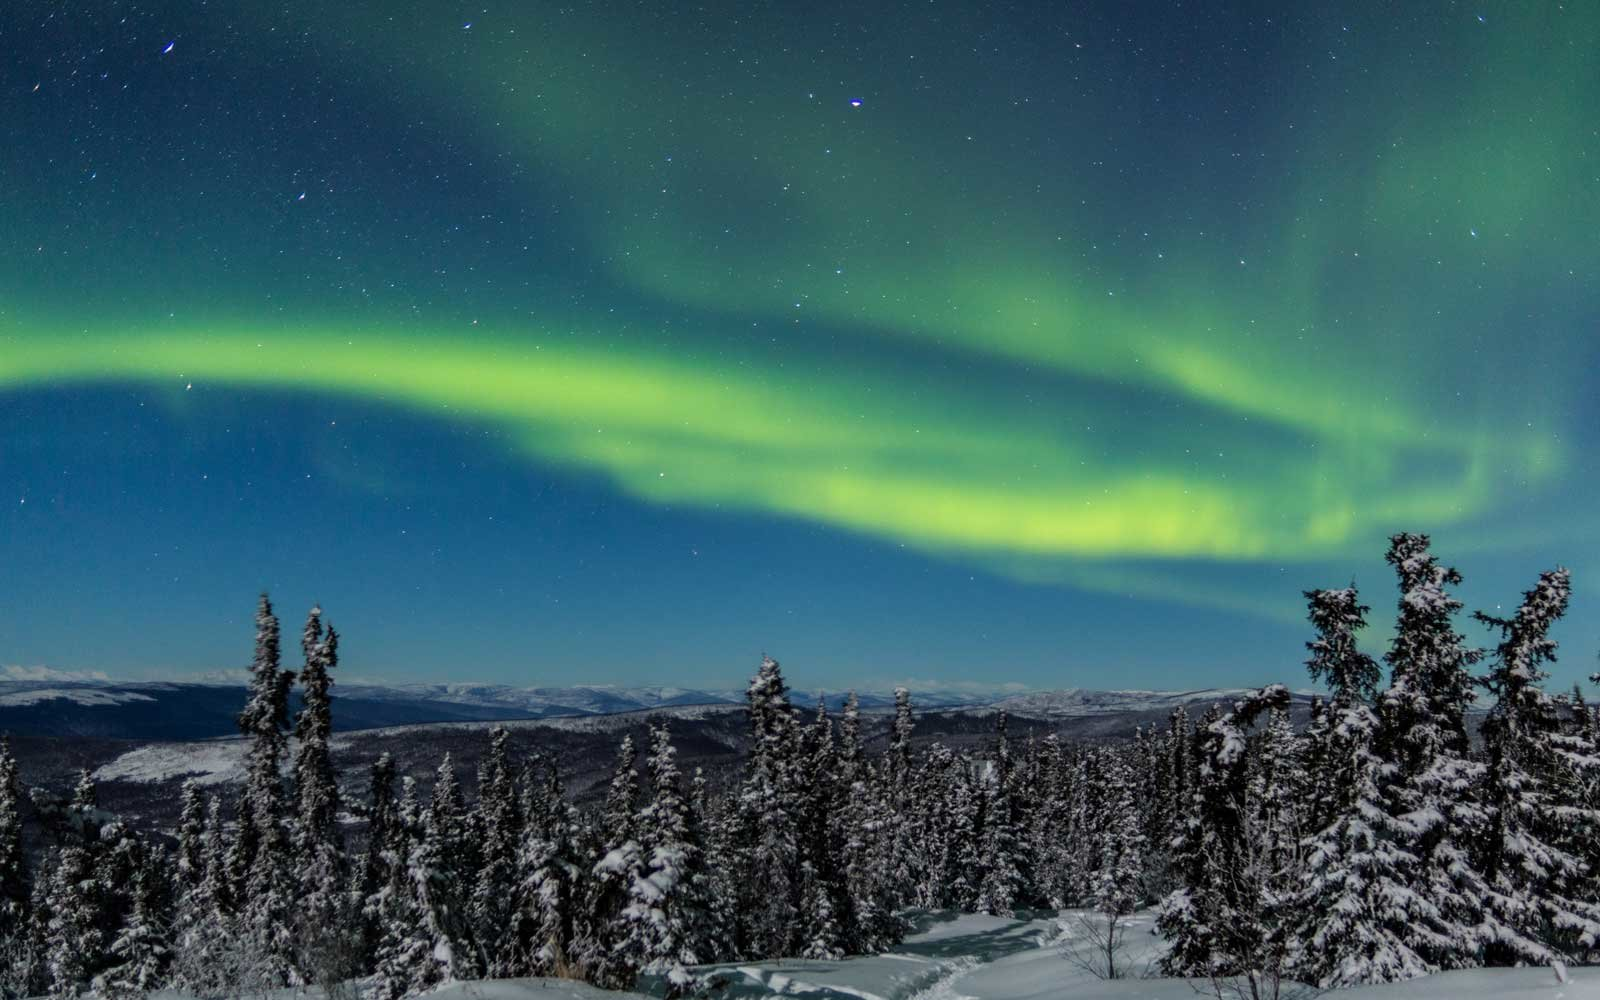 Best Time To See Northern Lights In Alaska 2019 See Alaska's Northern Lights – Winter 2018 and 2019 | Travel + Leisure